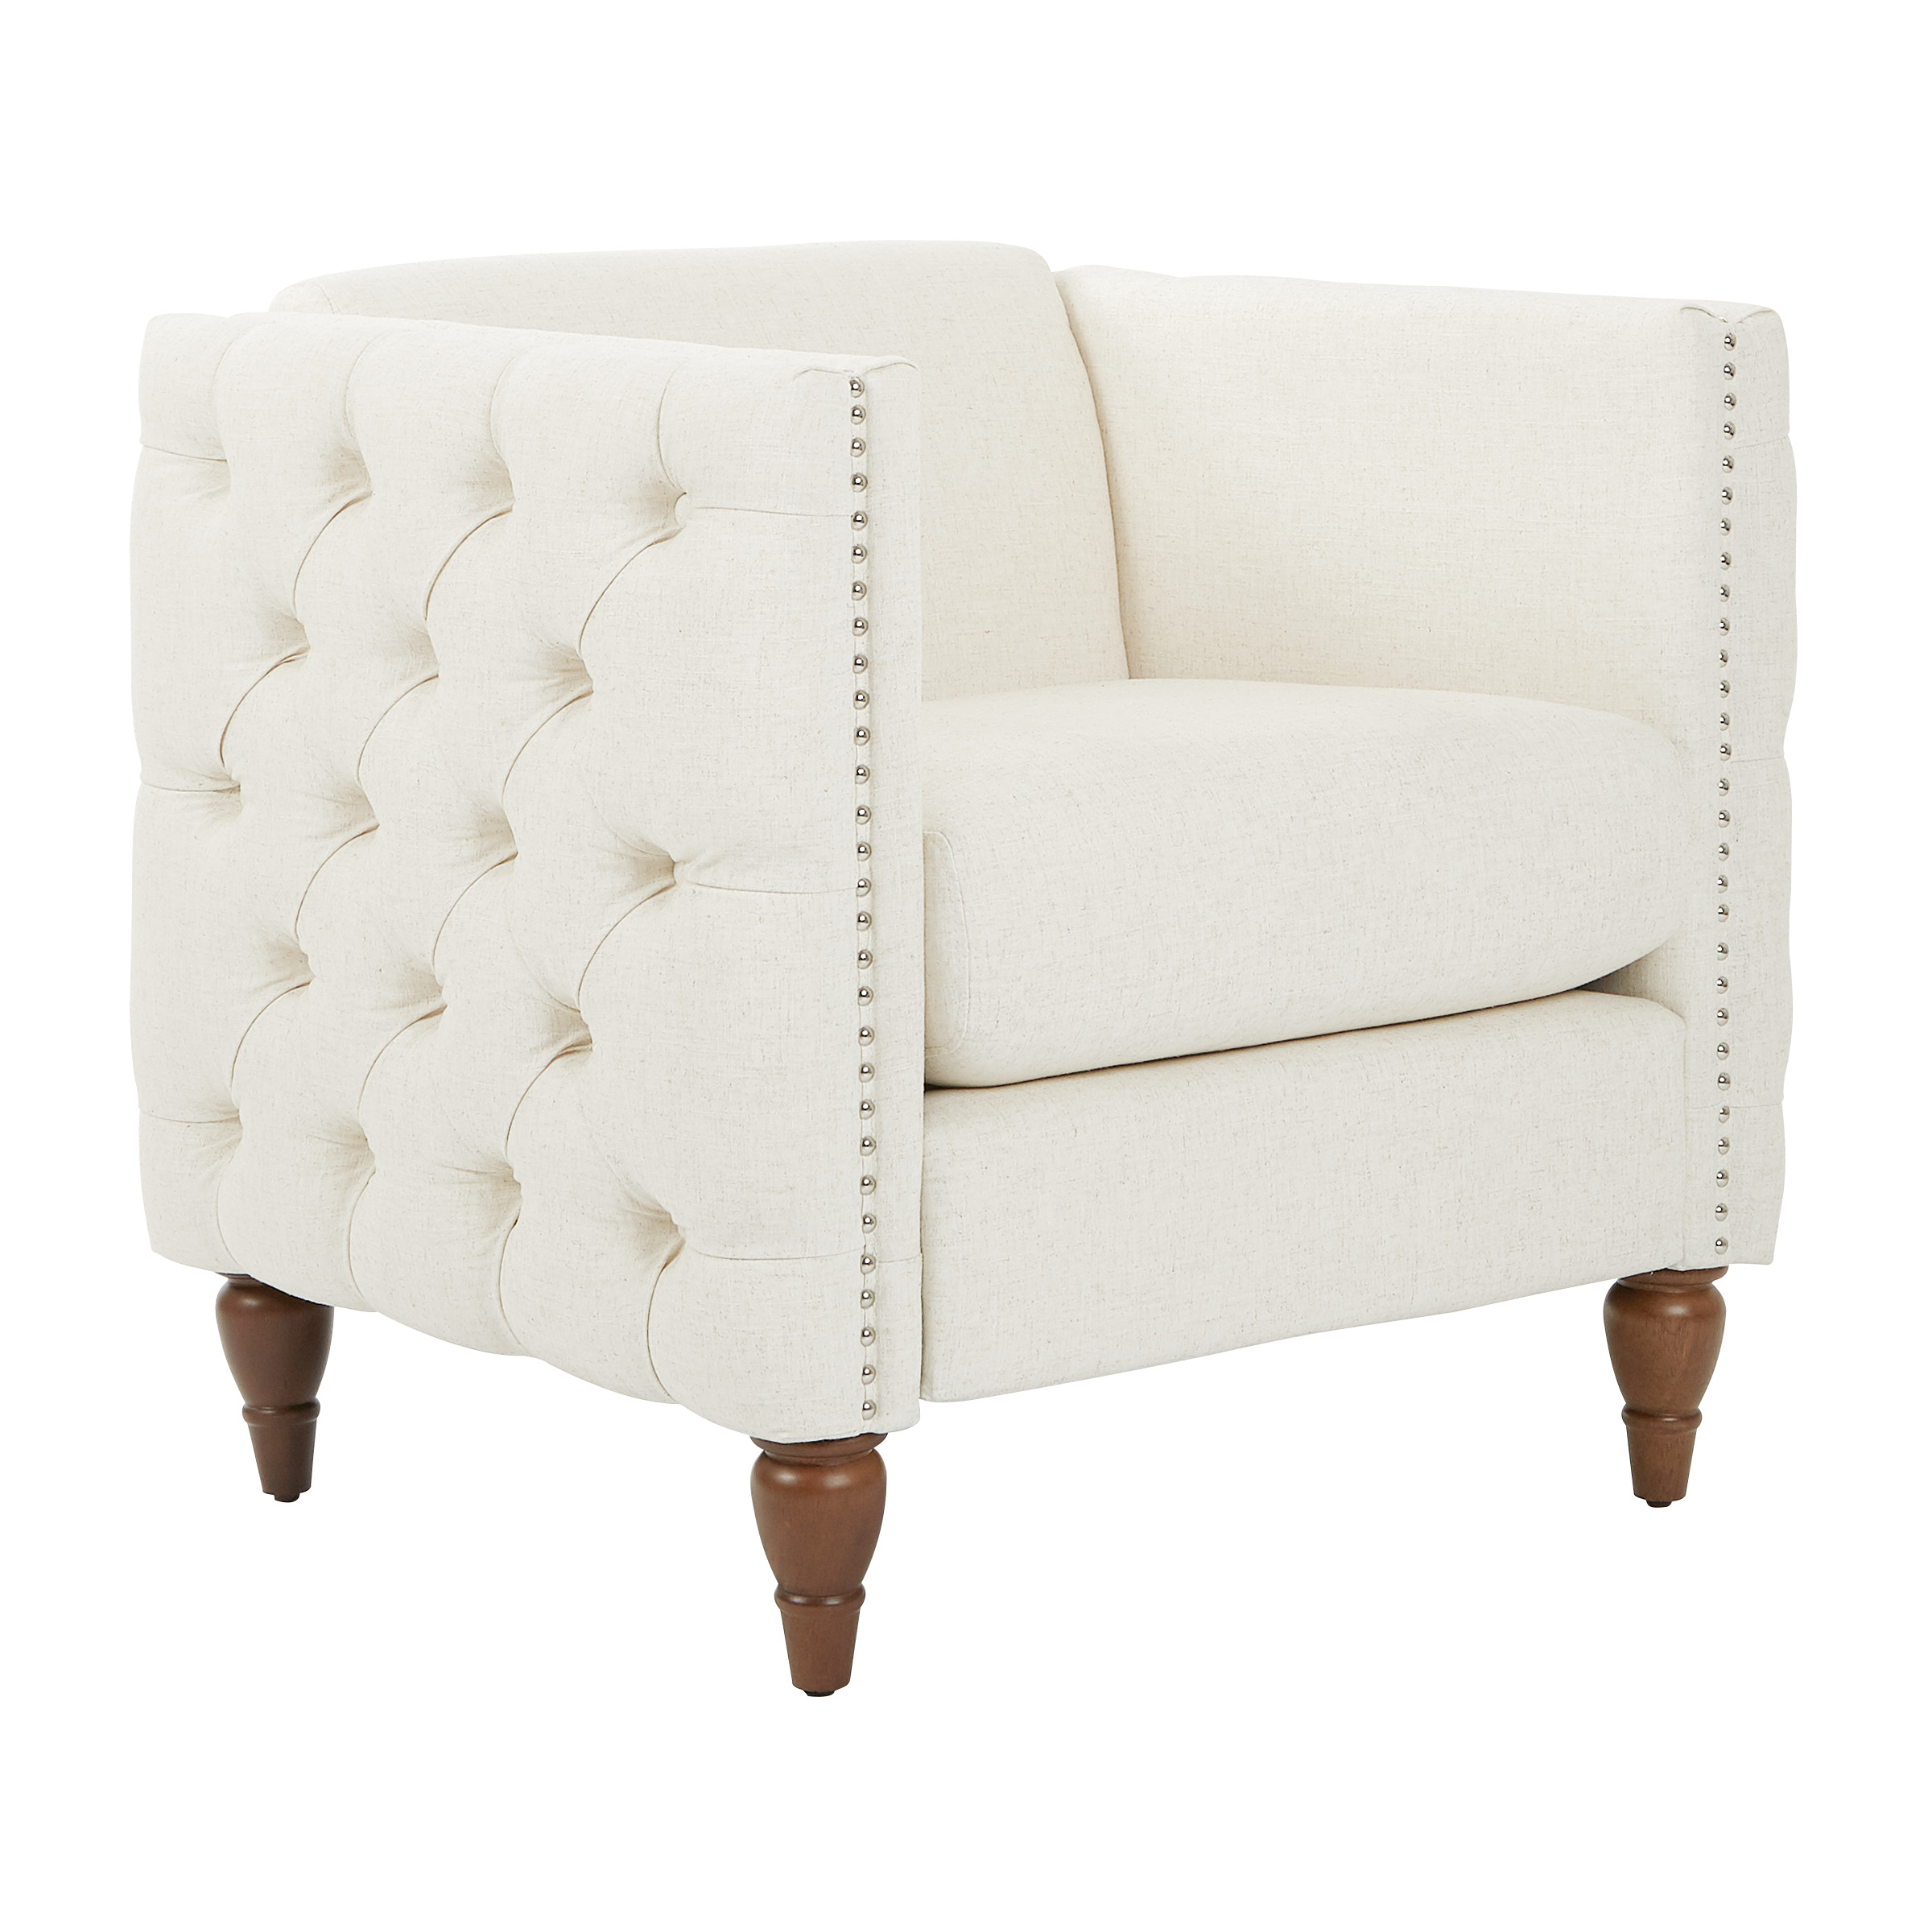 Evie Tufted Chair In Linen Fabric With Coffee Legs K D